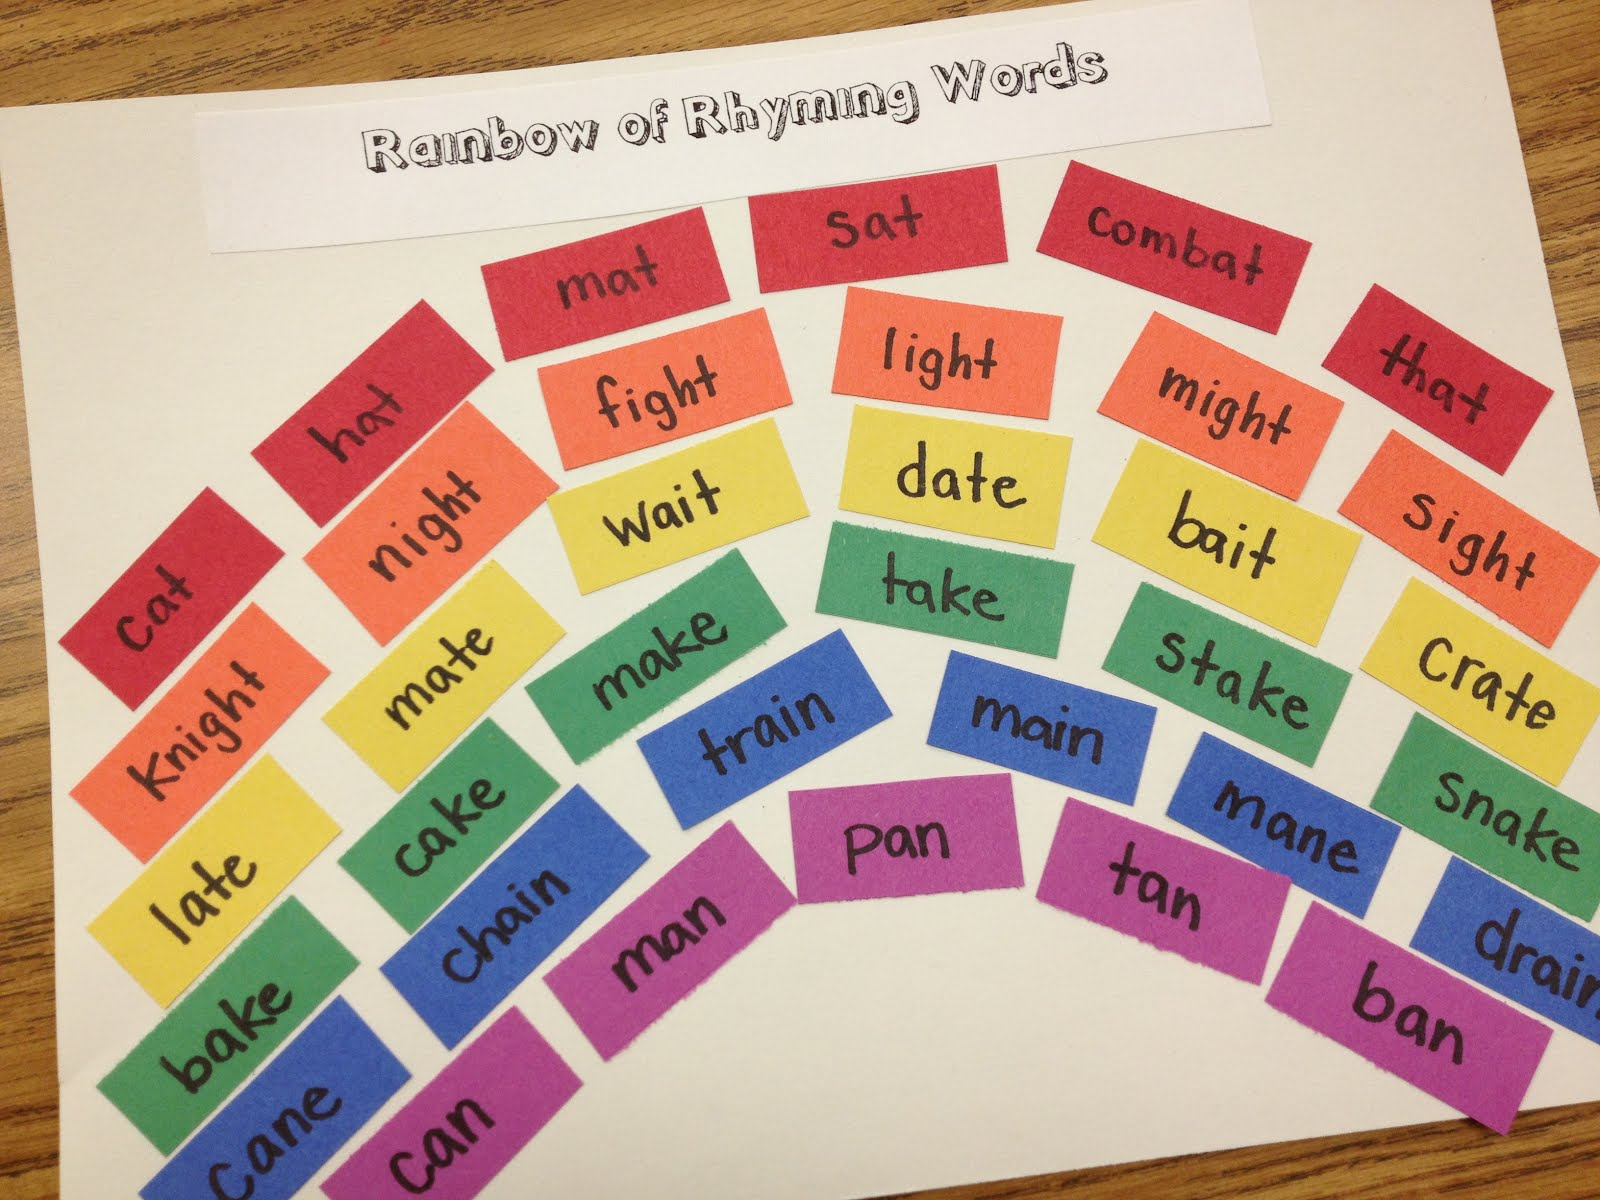 A Love For Teaching Rainbow Of Rhyming Words